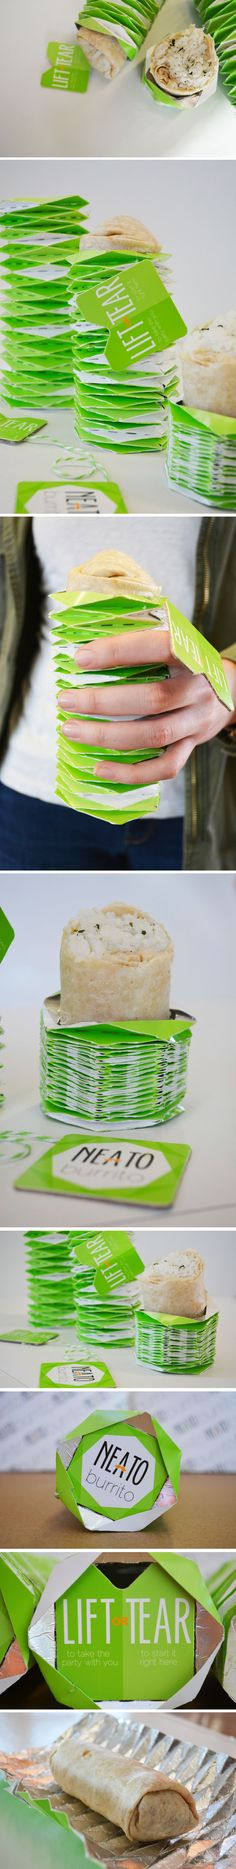 Neeto Burrito Student Packaging Concept #packaging